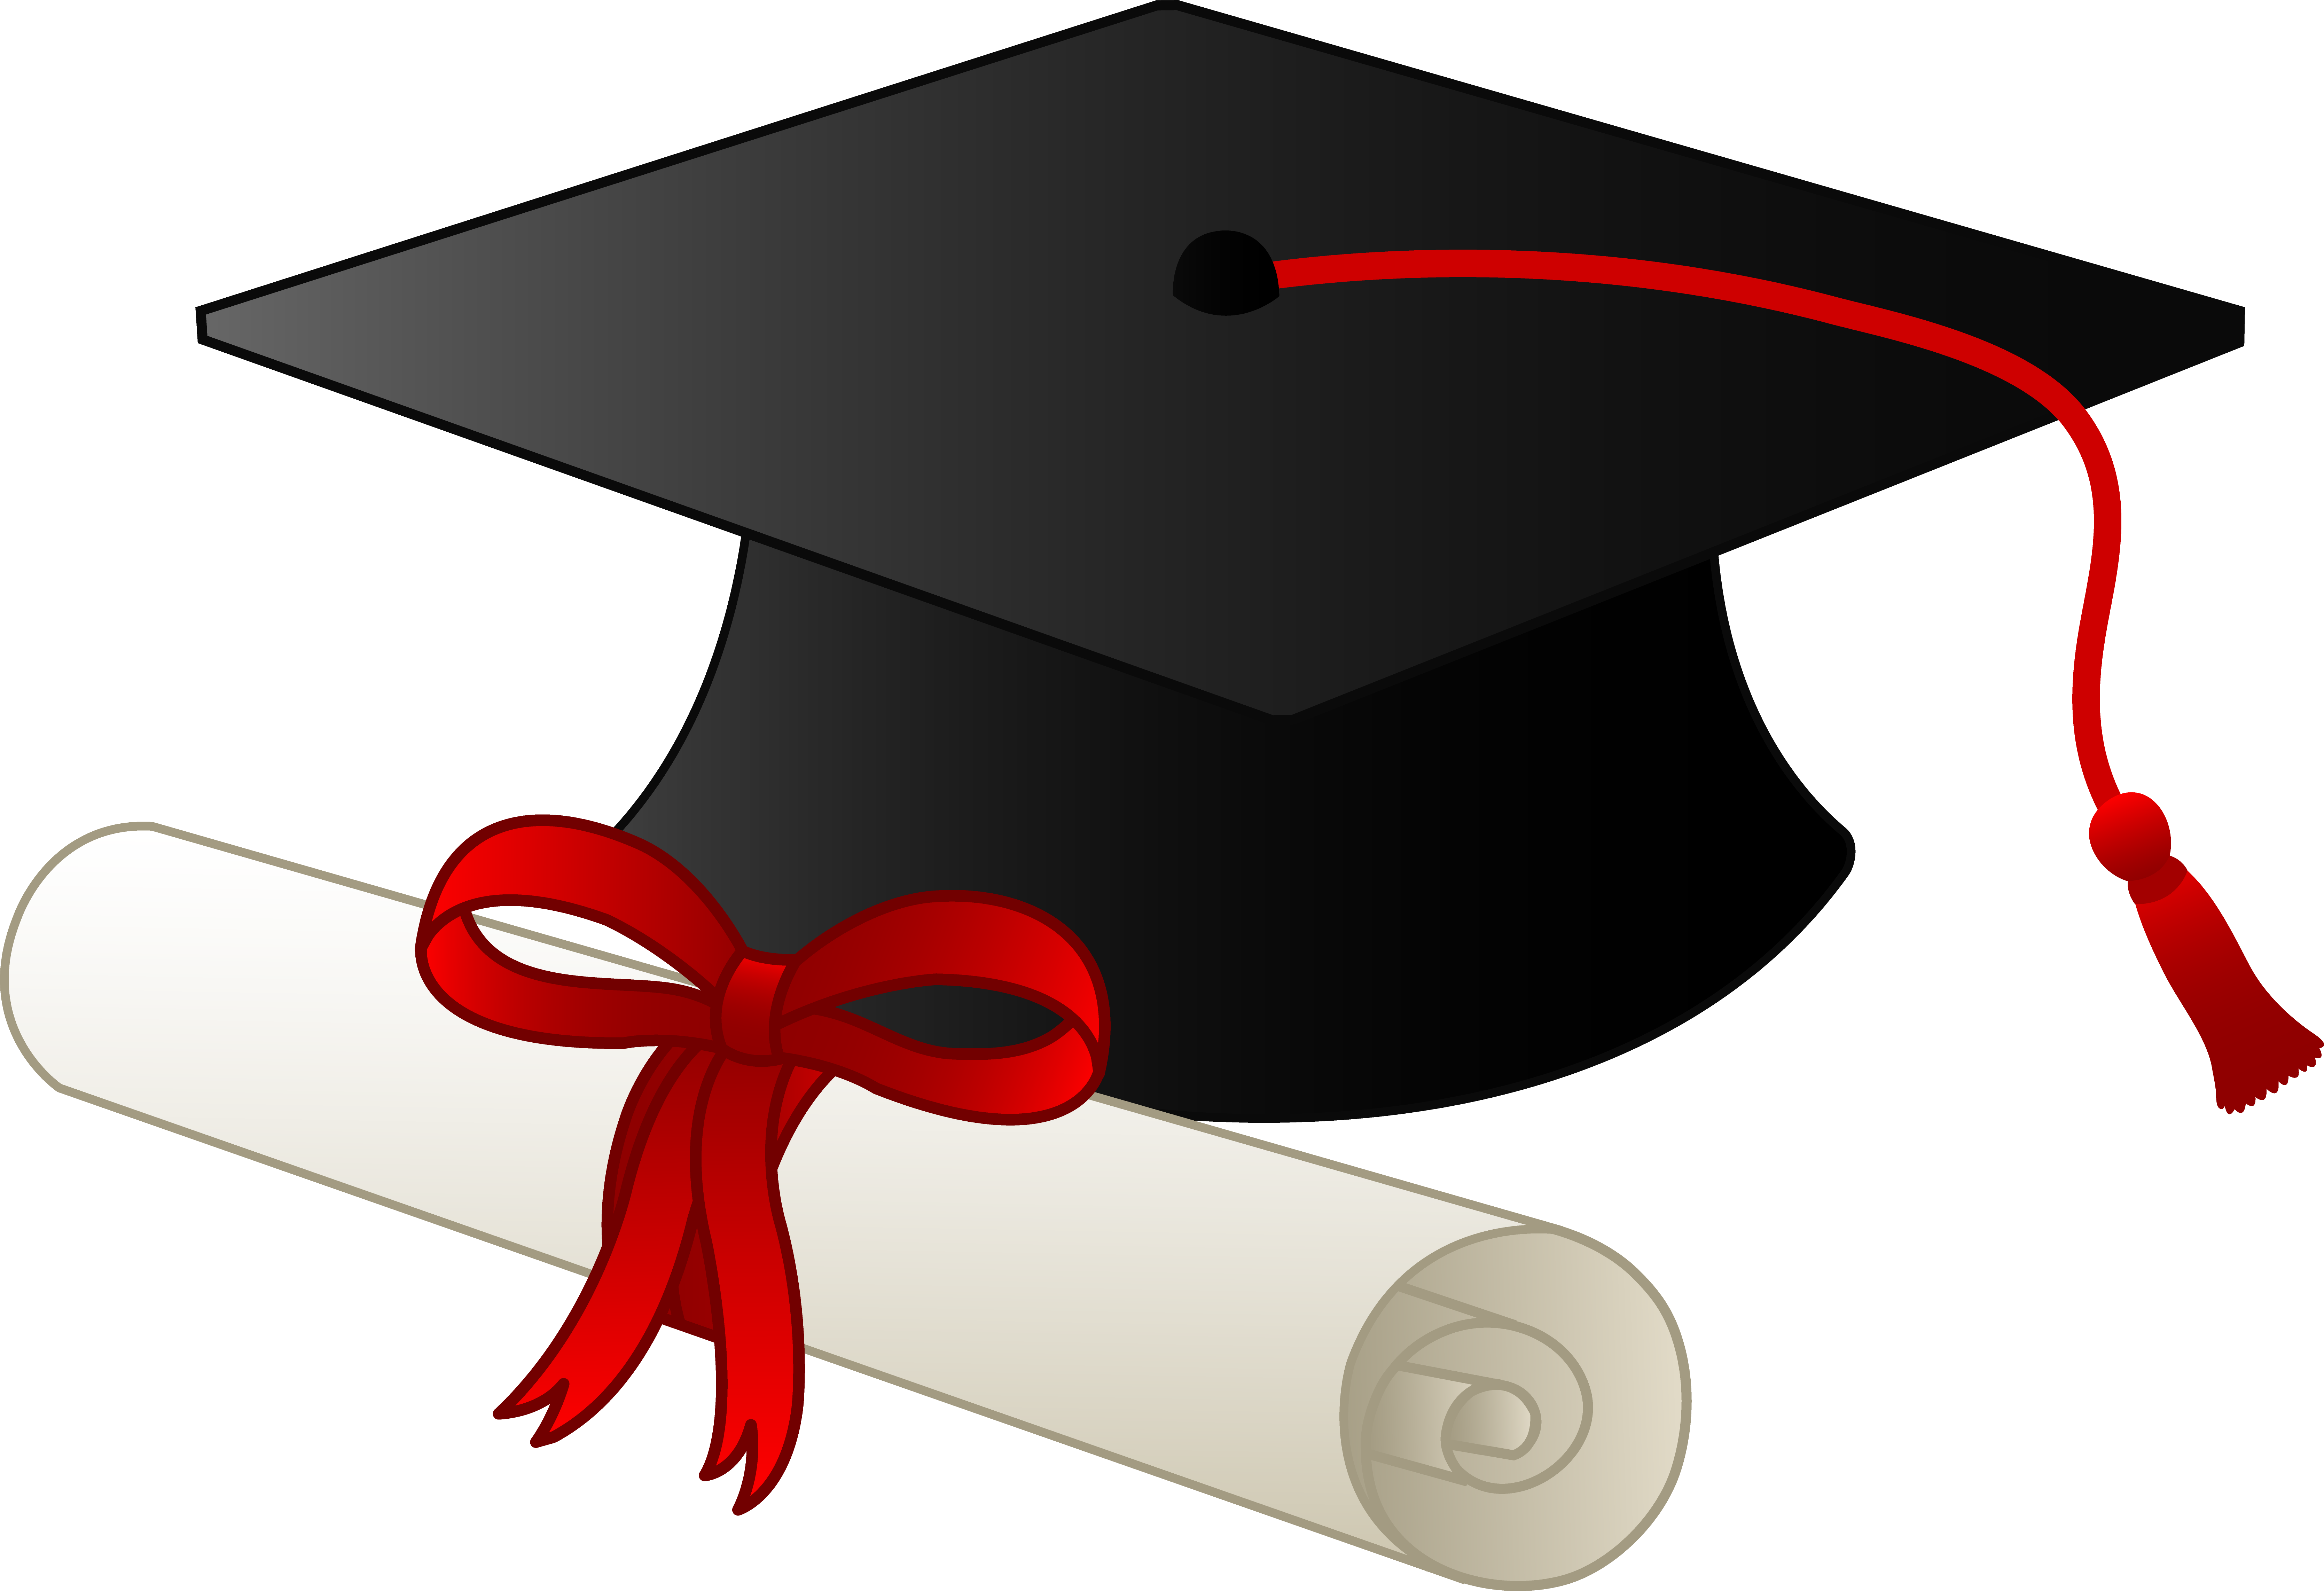 High school graduate clipart picture free stock Graduation Clip Art Borders | Graduation Cap and Diploma - Free Clip ... picture free stock